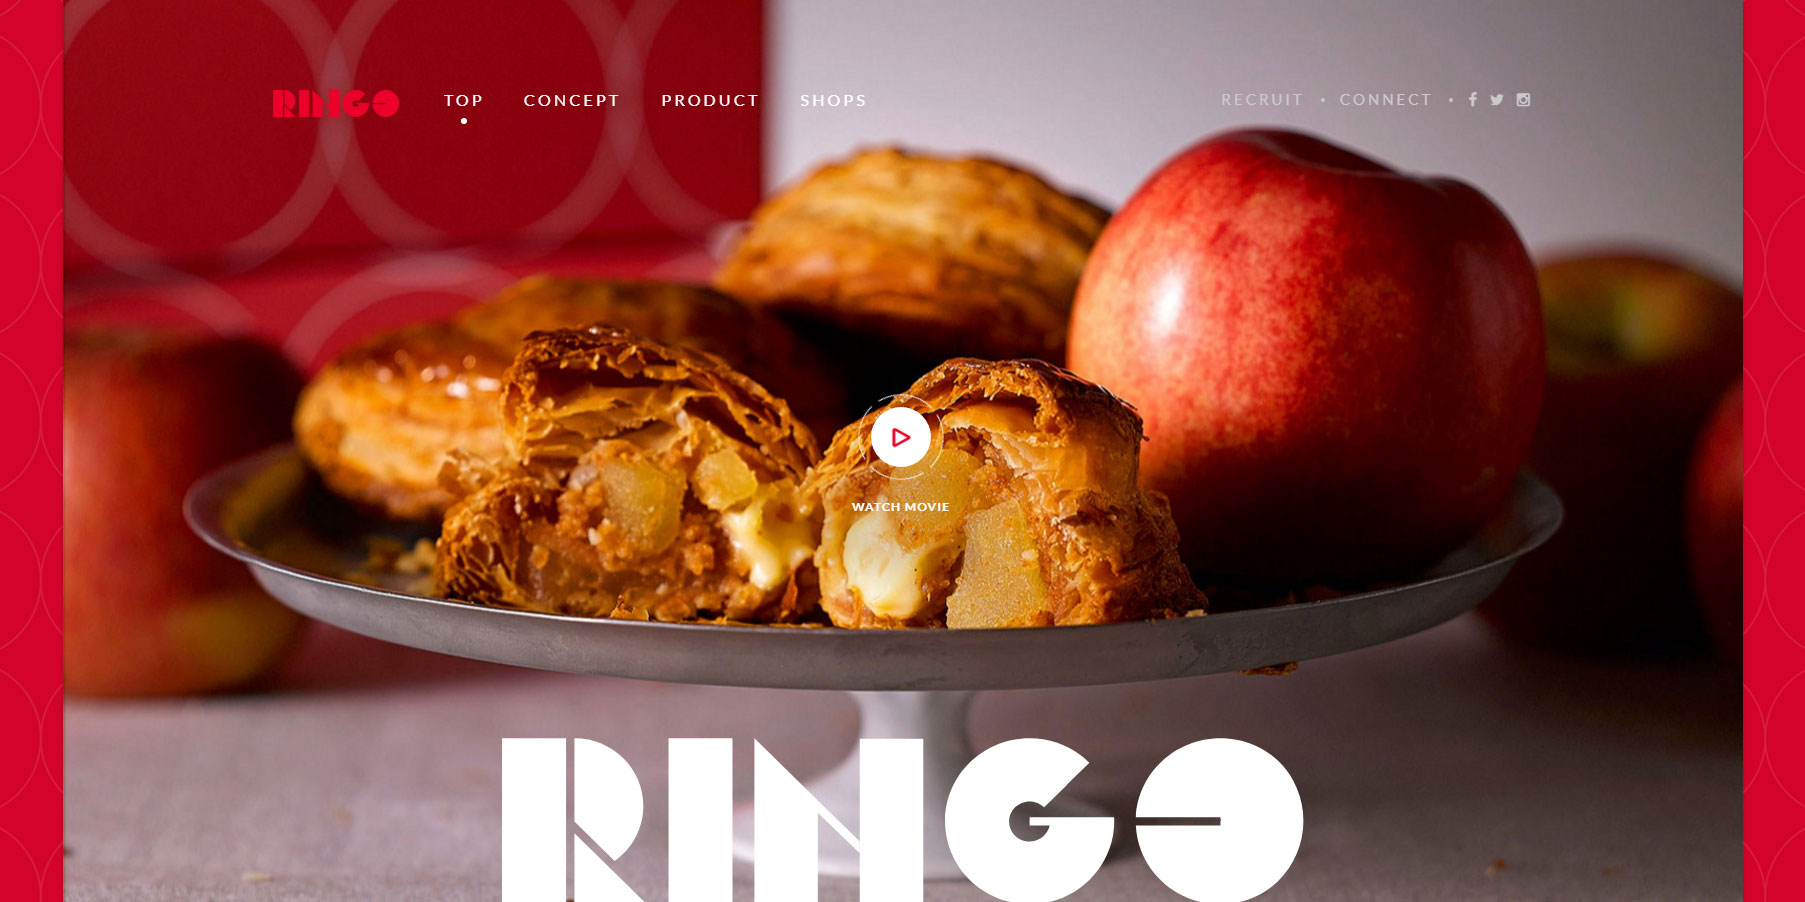 FUU RINGO | RINGO - Website of the Day